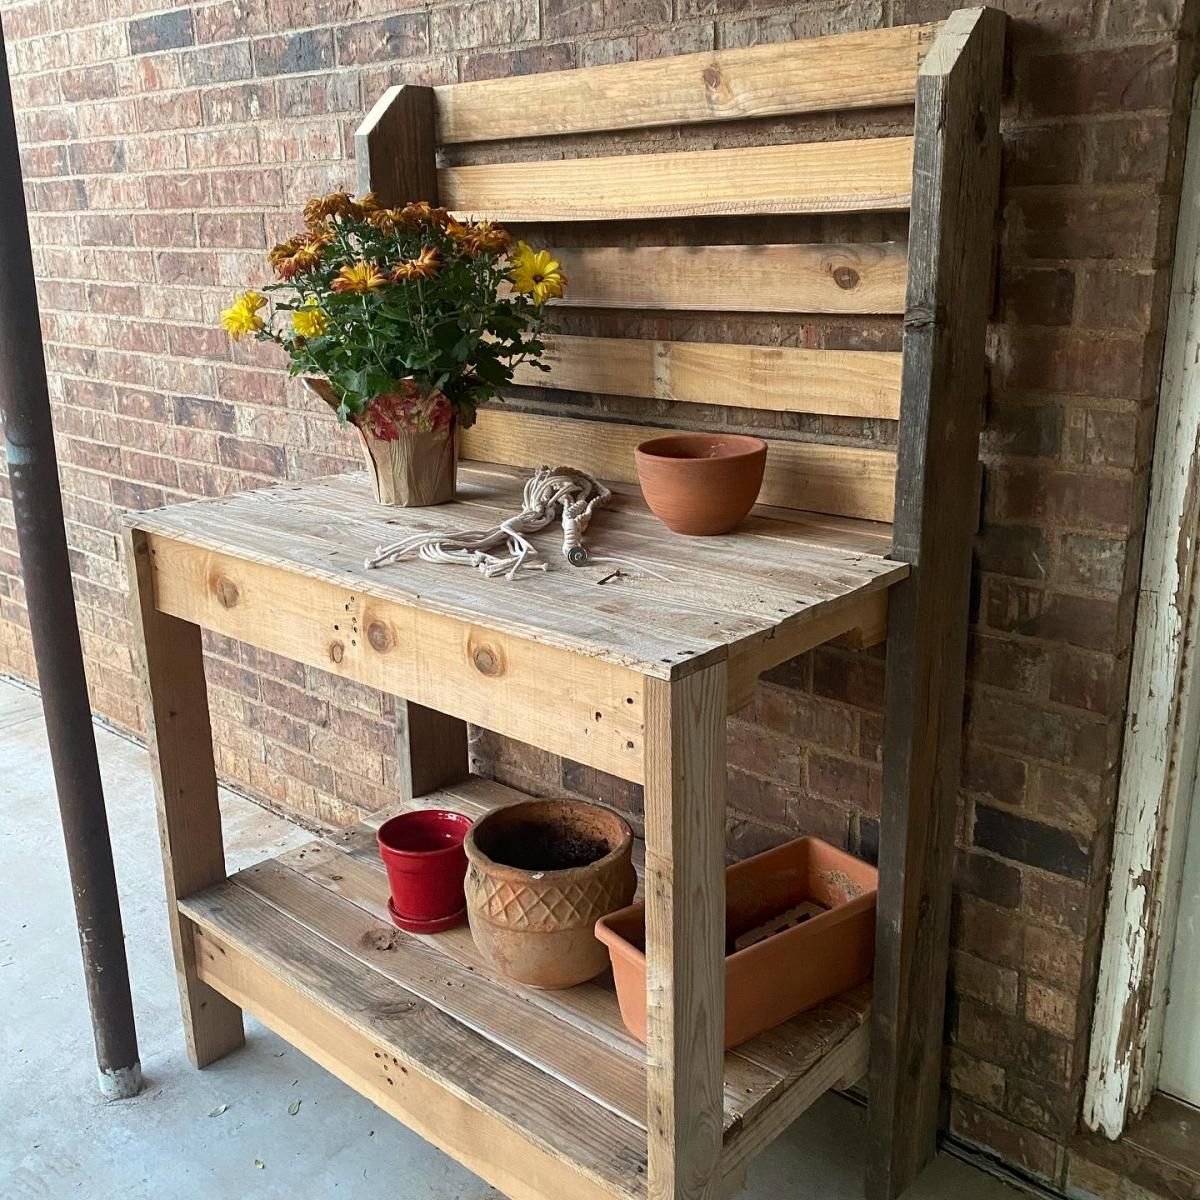 Pallet Wood Potting Bench Ana White In 2020 Wood Pallets Potting Bench Plans Potting Bench